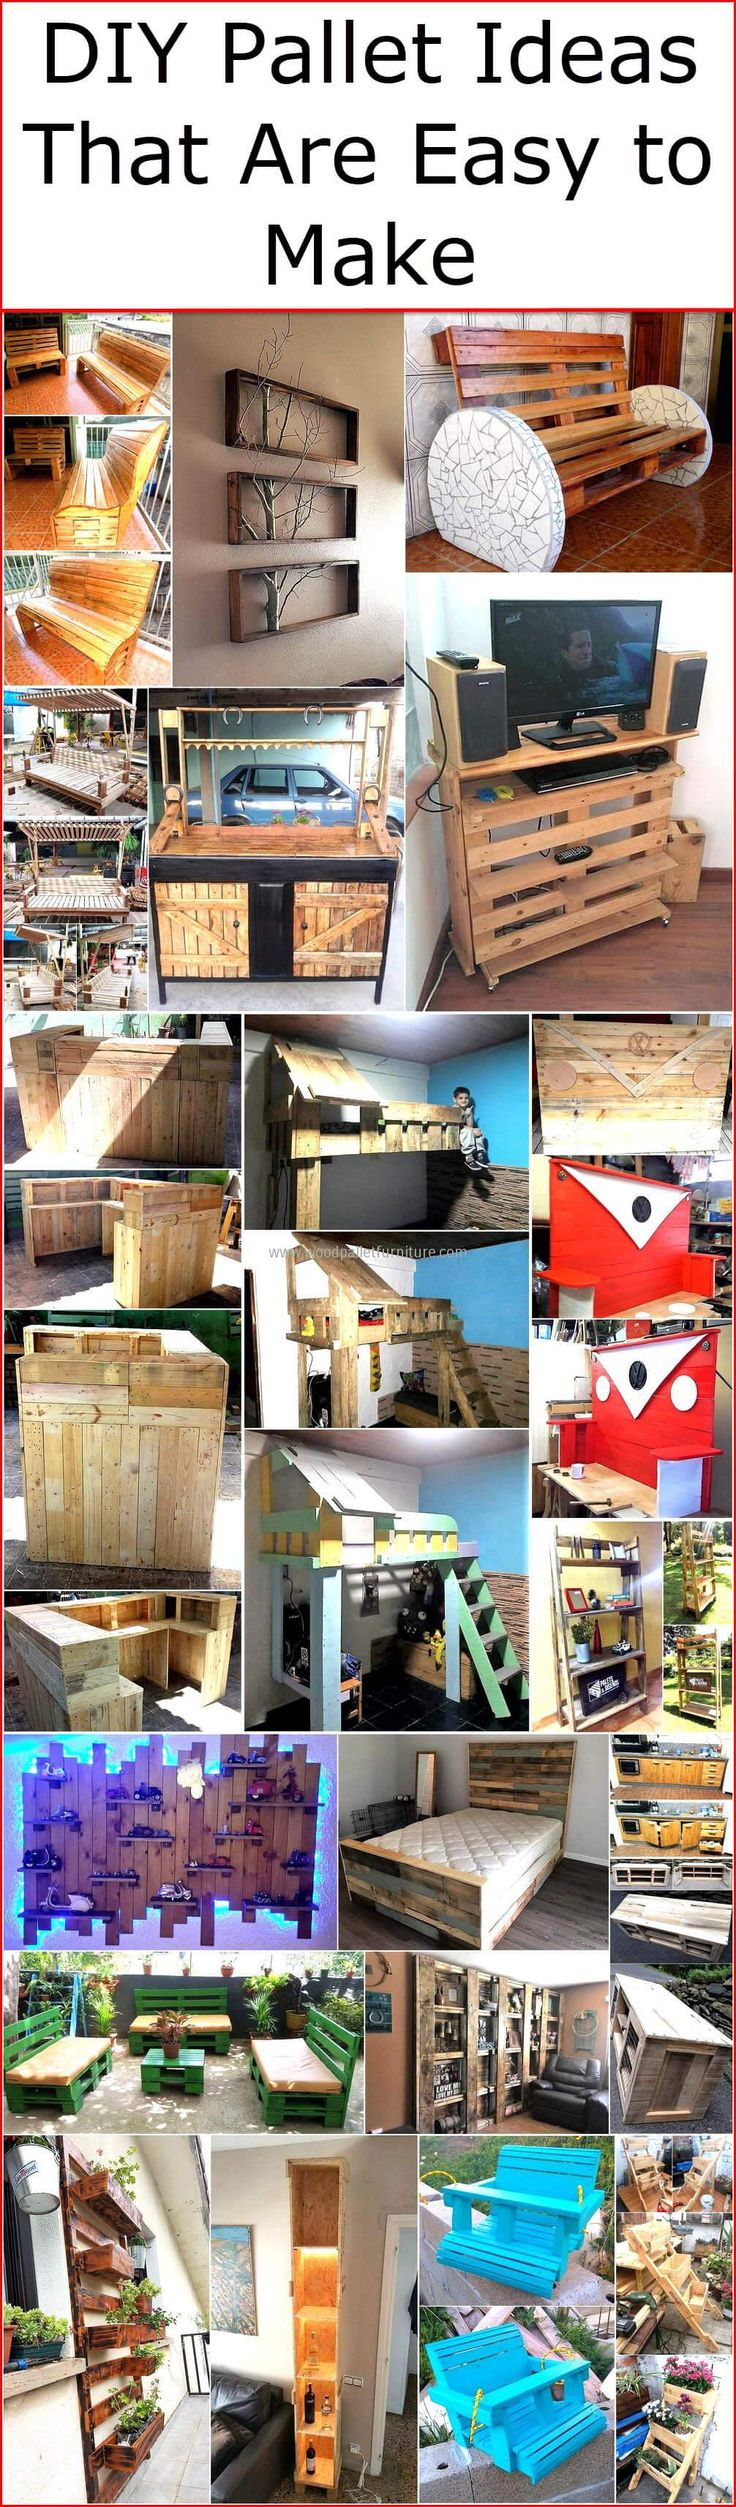 Wooden transport pallets have become increasingly popular for diy - Diy Pallet Ideas That Are Easy To Make